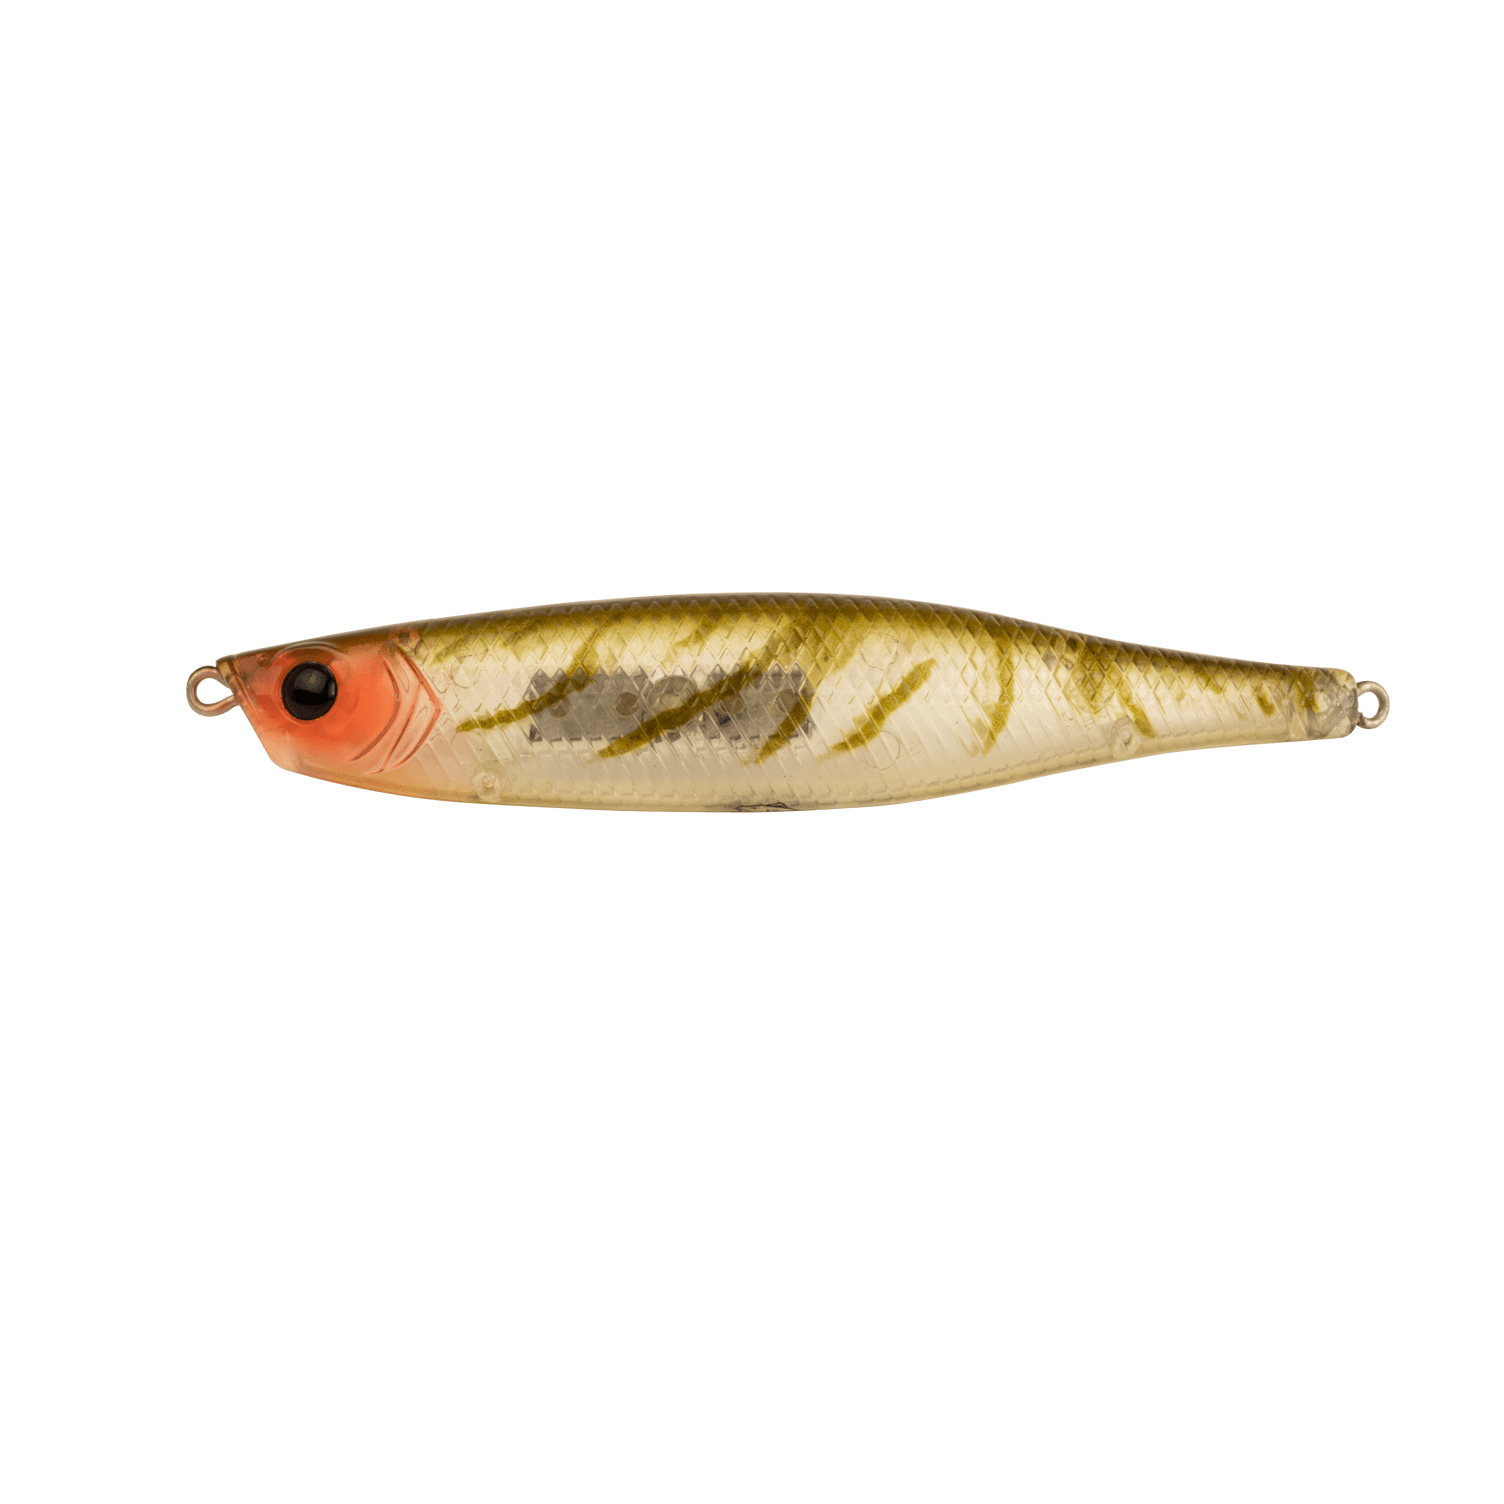 Berkley Pro-Tech Bender - Lures and Jigs - Hard Body | Addict Tackle